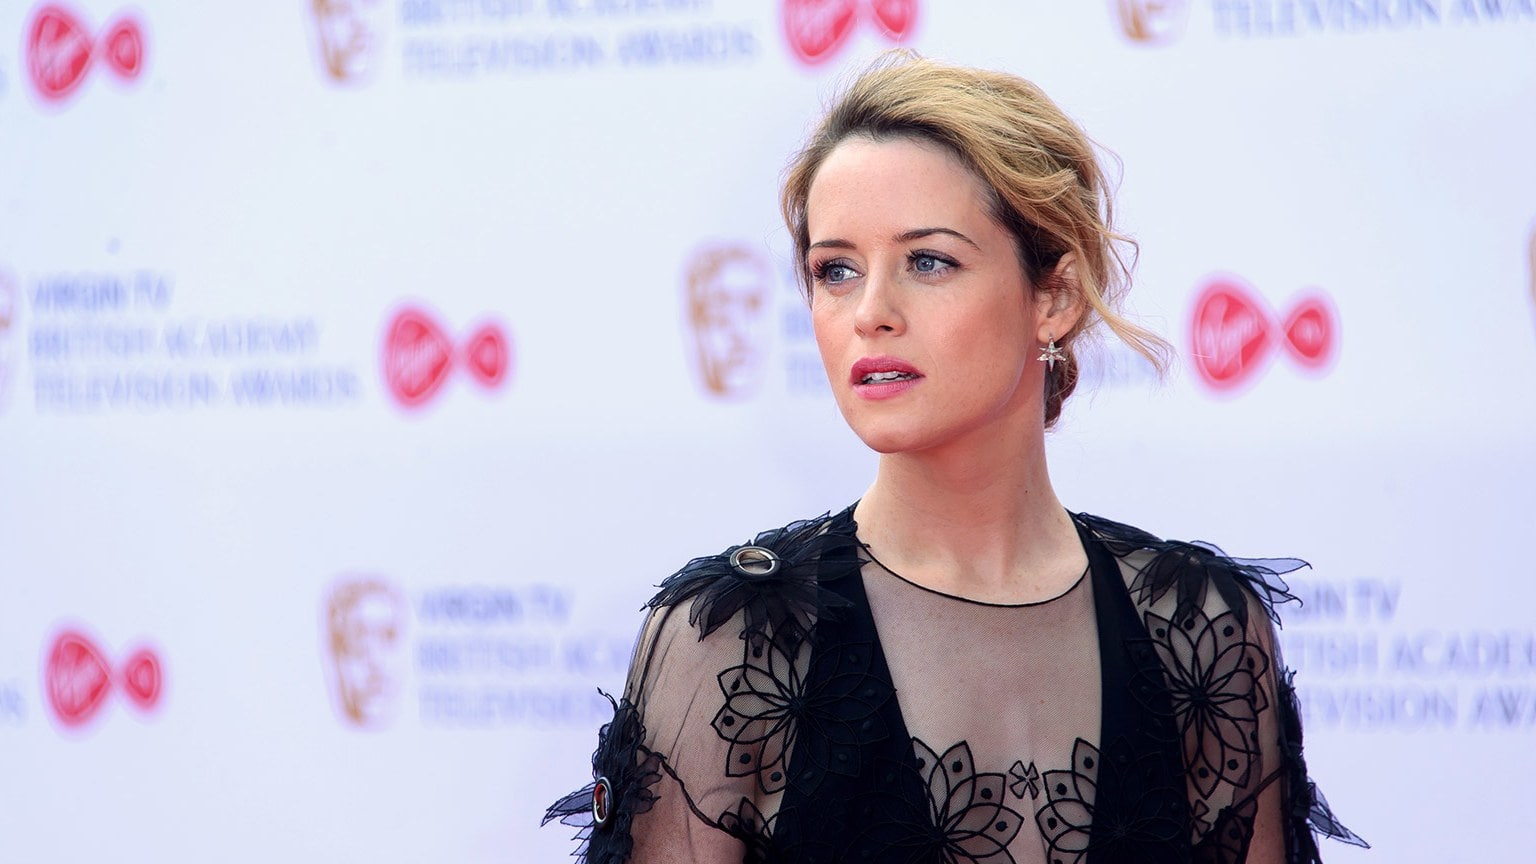 Will Claire Foy Be A New Hacker In The 'Girl With the Dragon Tattoo' Sequel?